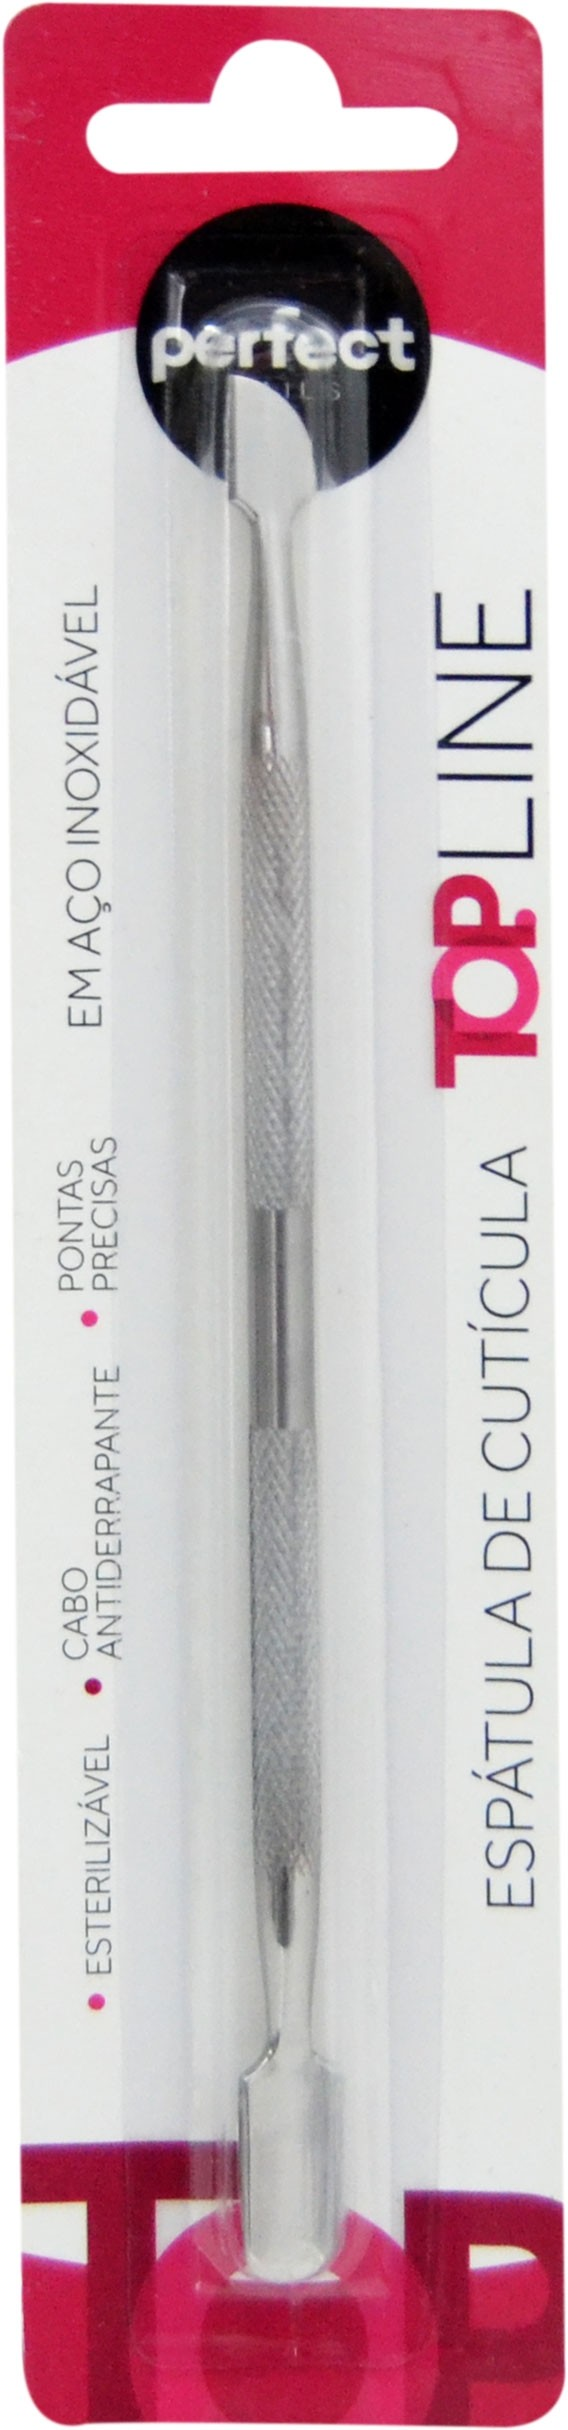 Espátula de Cutícula Top Line Perfect Nails